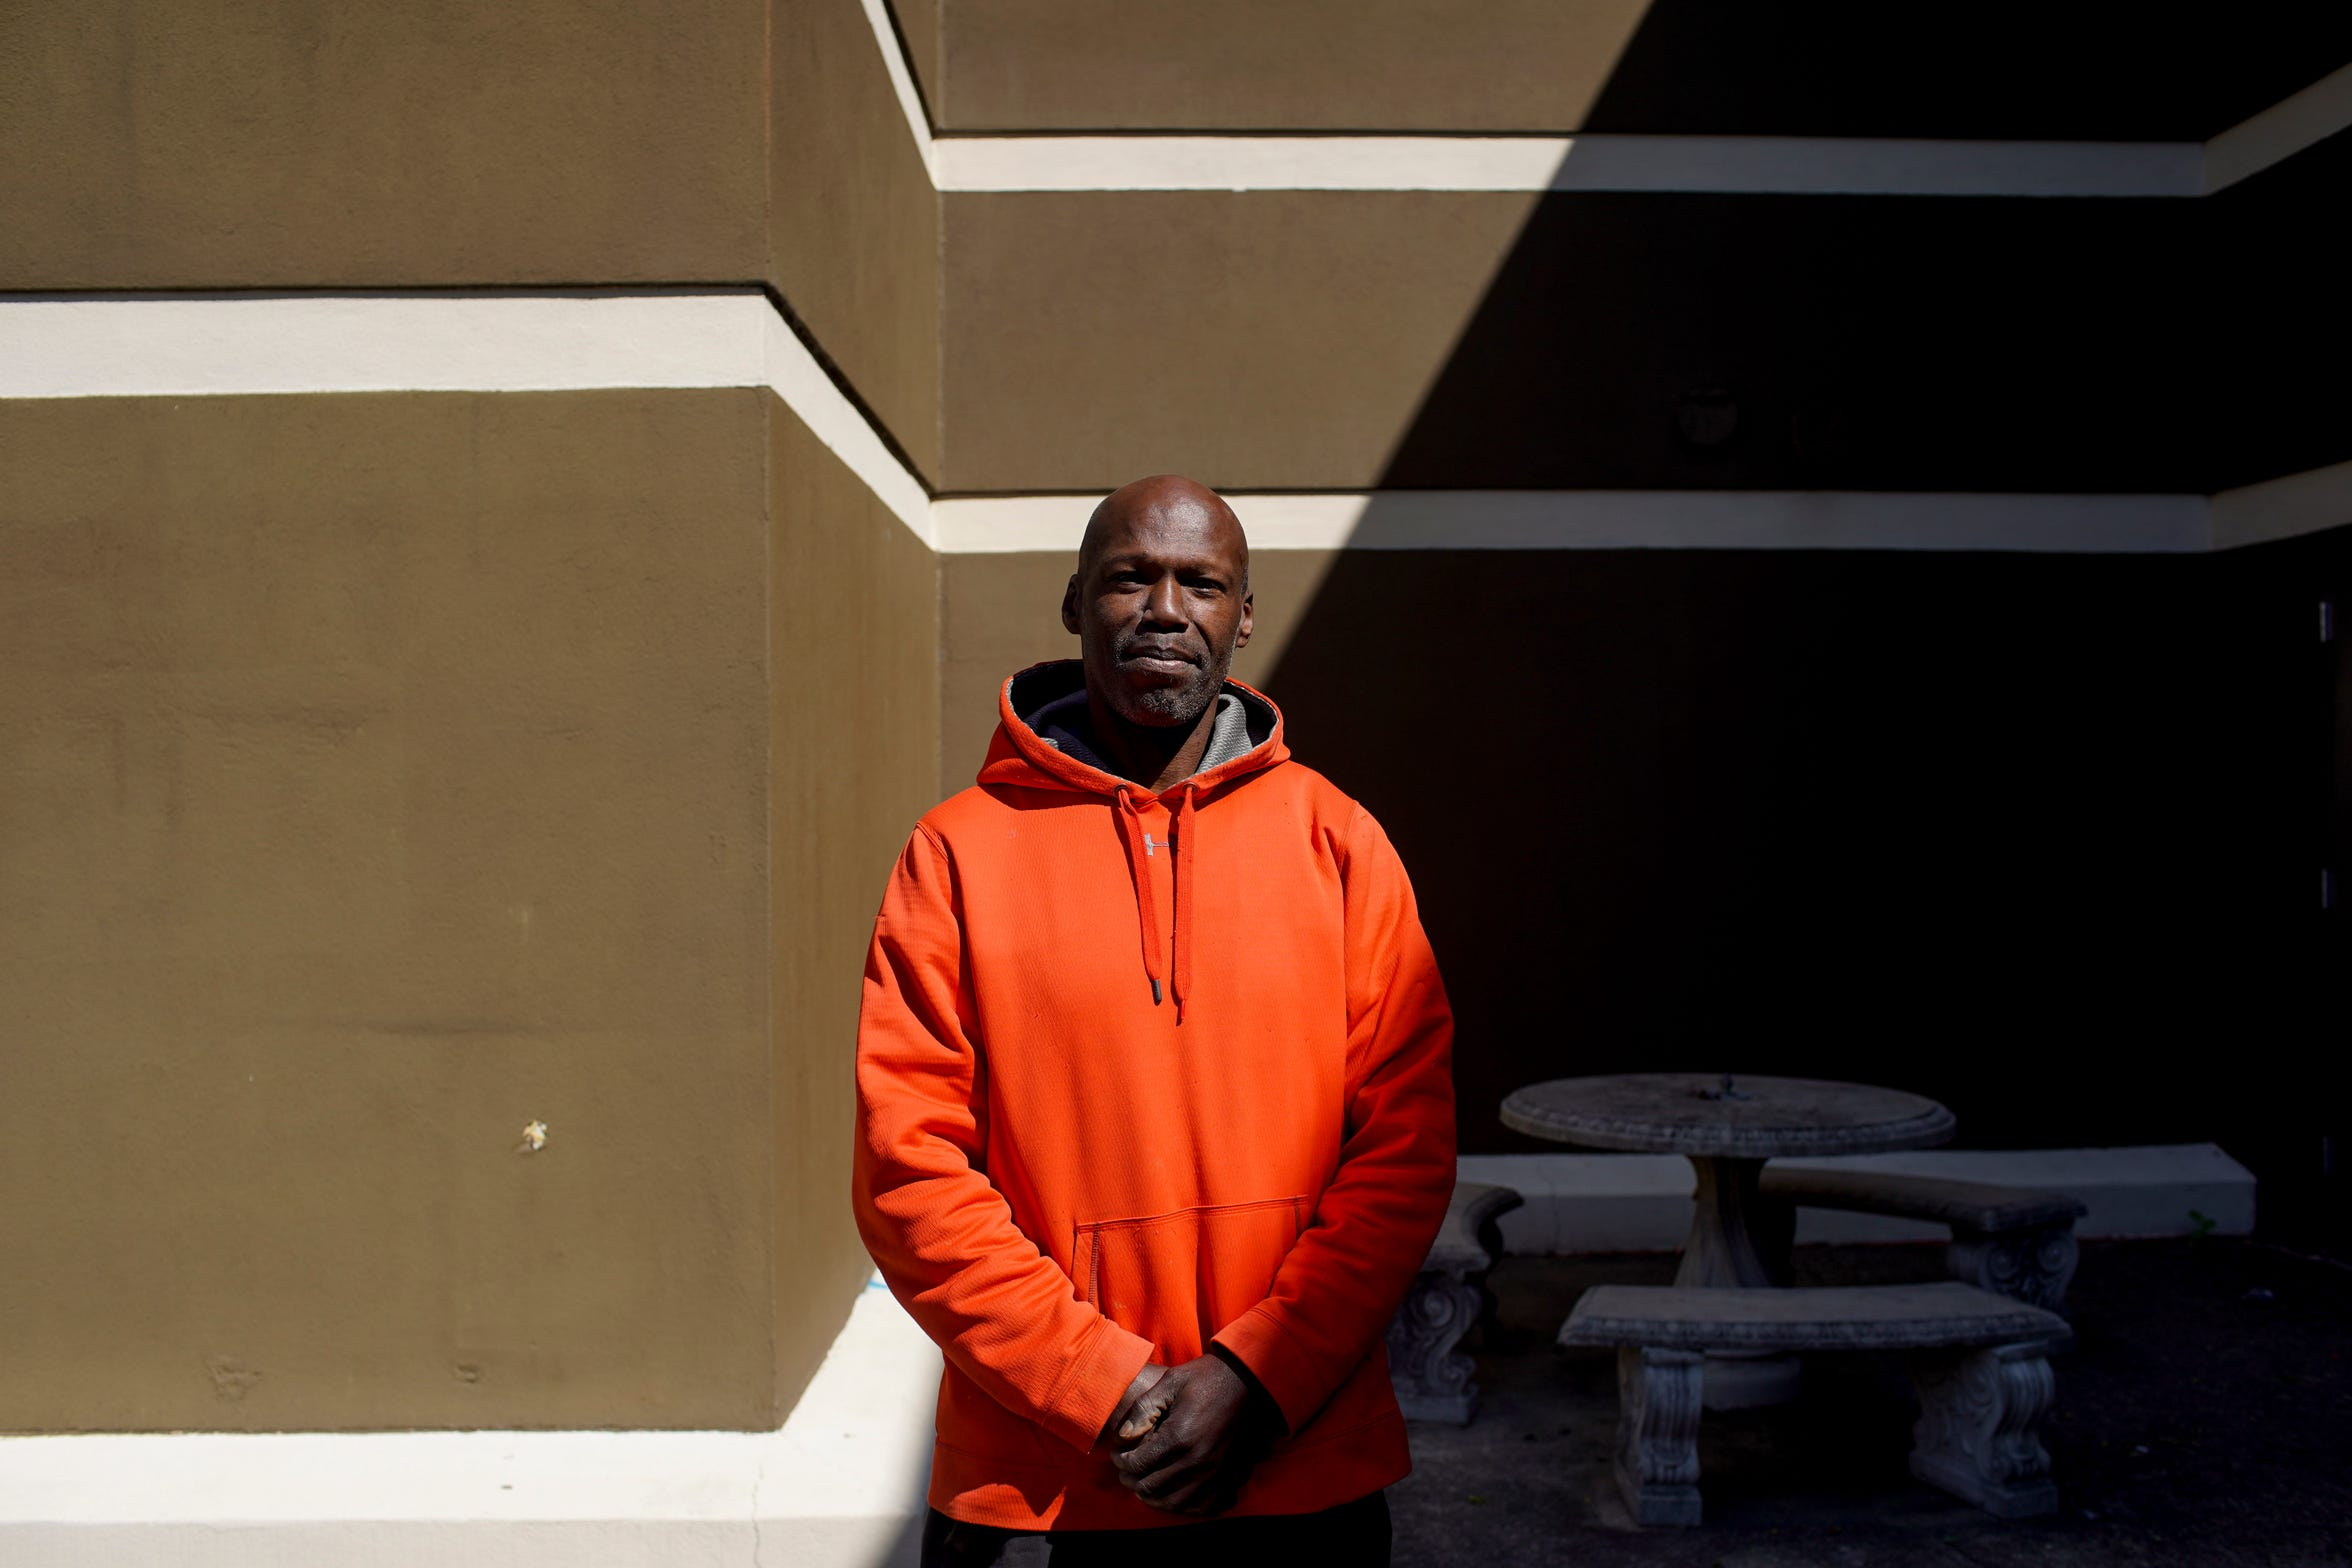 Mark Mosley stands in the light to pose for a portrait after picking up some resources at YAIPaks center in Clarksville, Tenn., on Thursday, April 9, 2020.